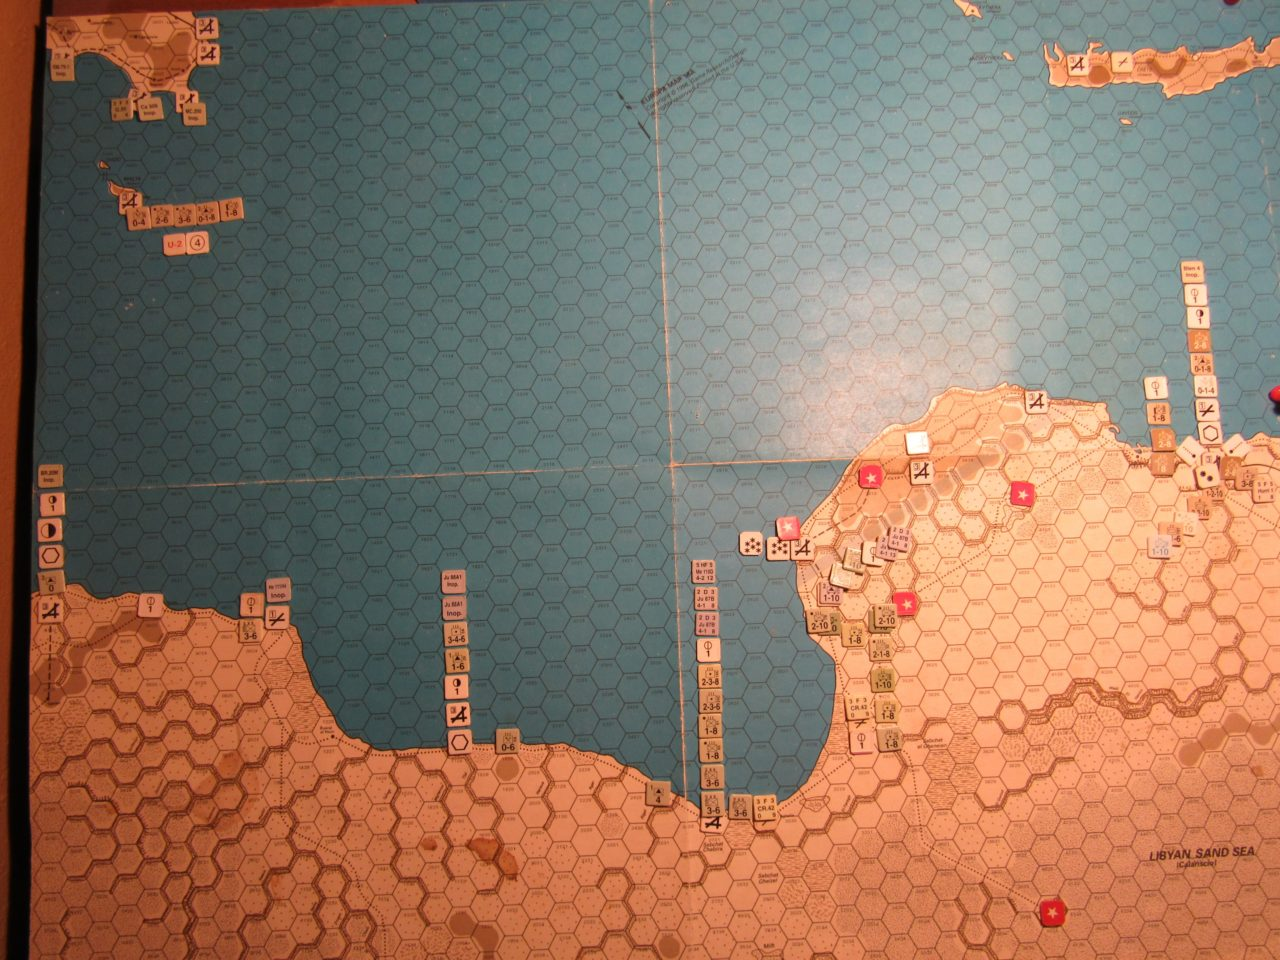 ME/ER-II Scenario: Apr I 41 Allied EOT; Axis dispositions